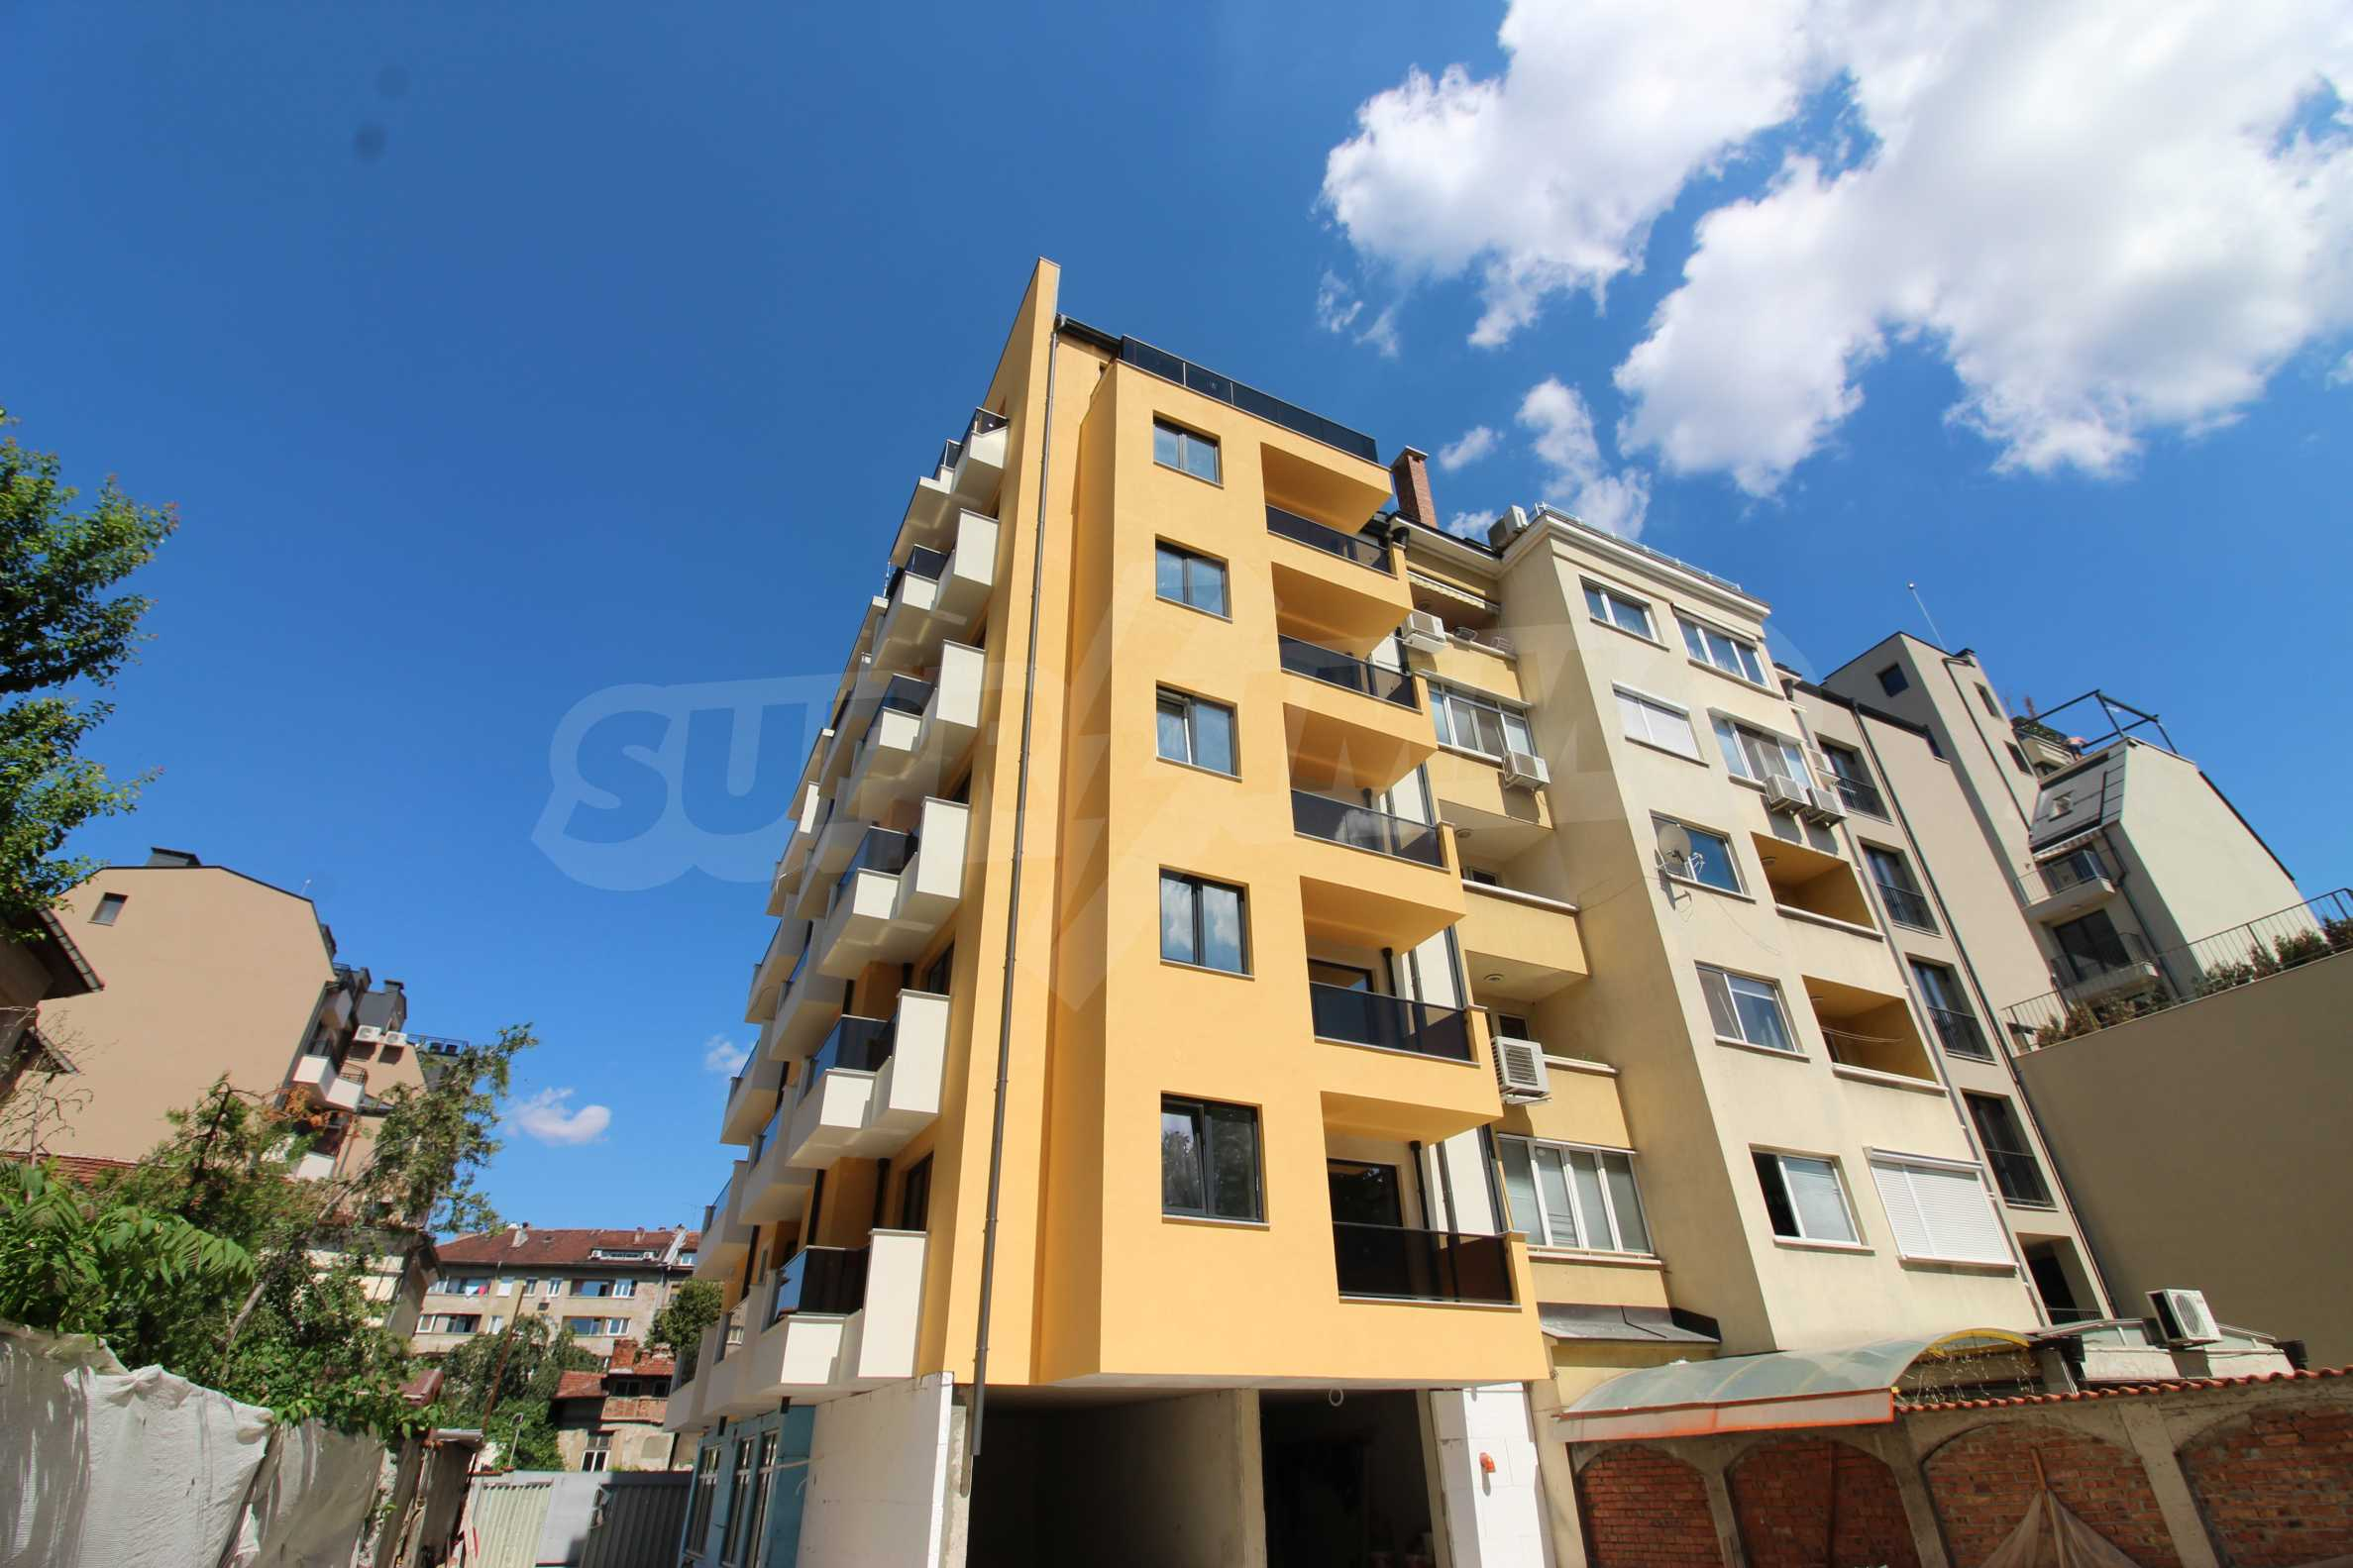 With ACT 14! 4-room apartment in a new boutique building in the center, next to Vasil Levski Blvd. 5